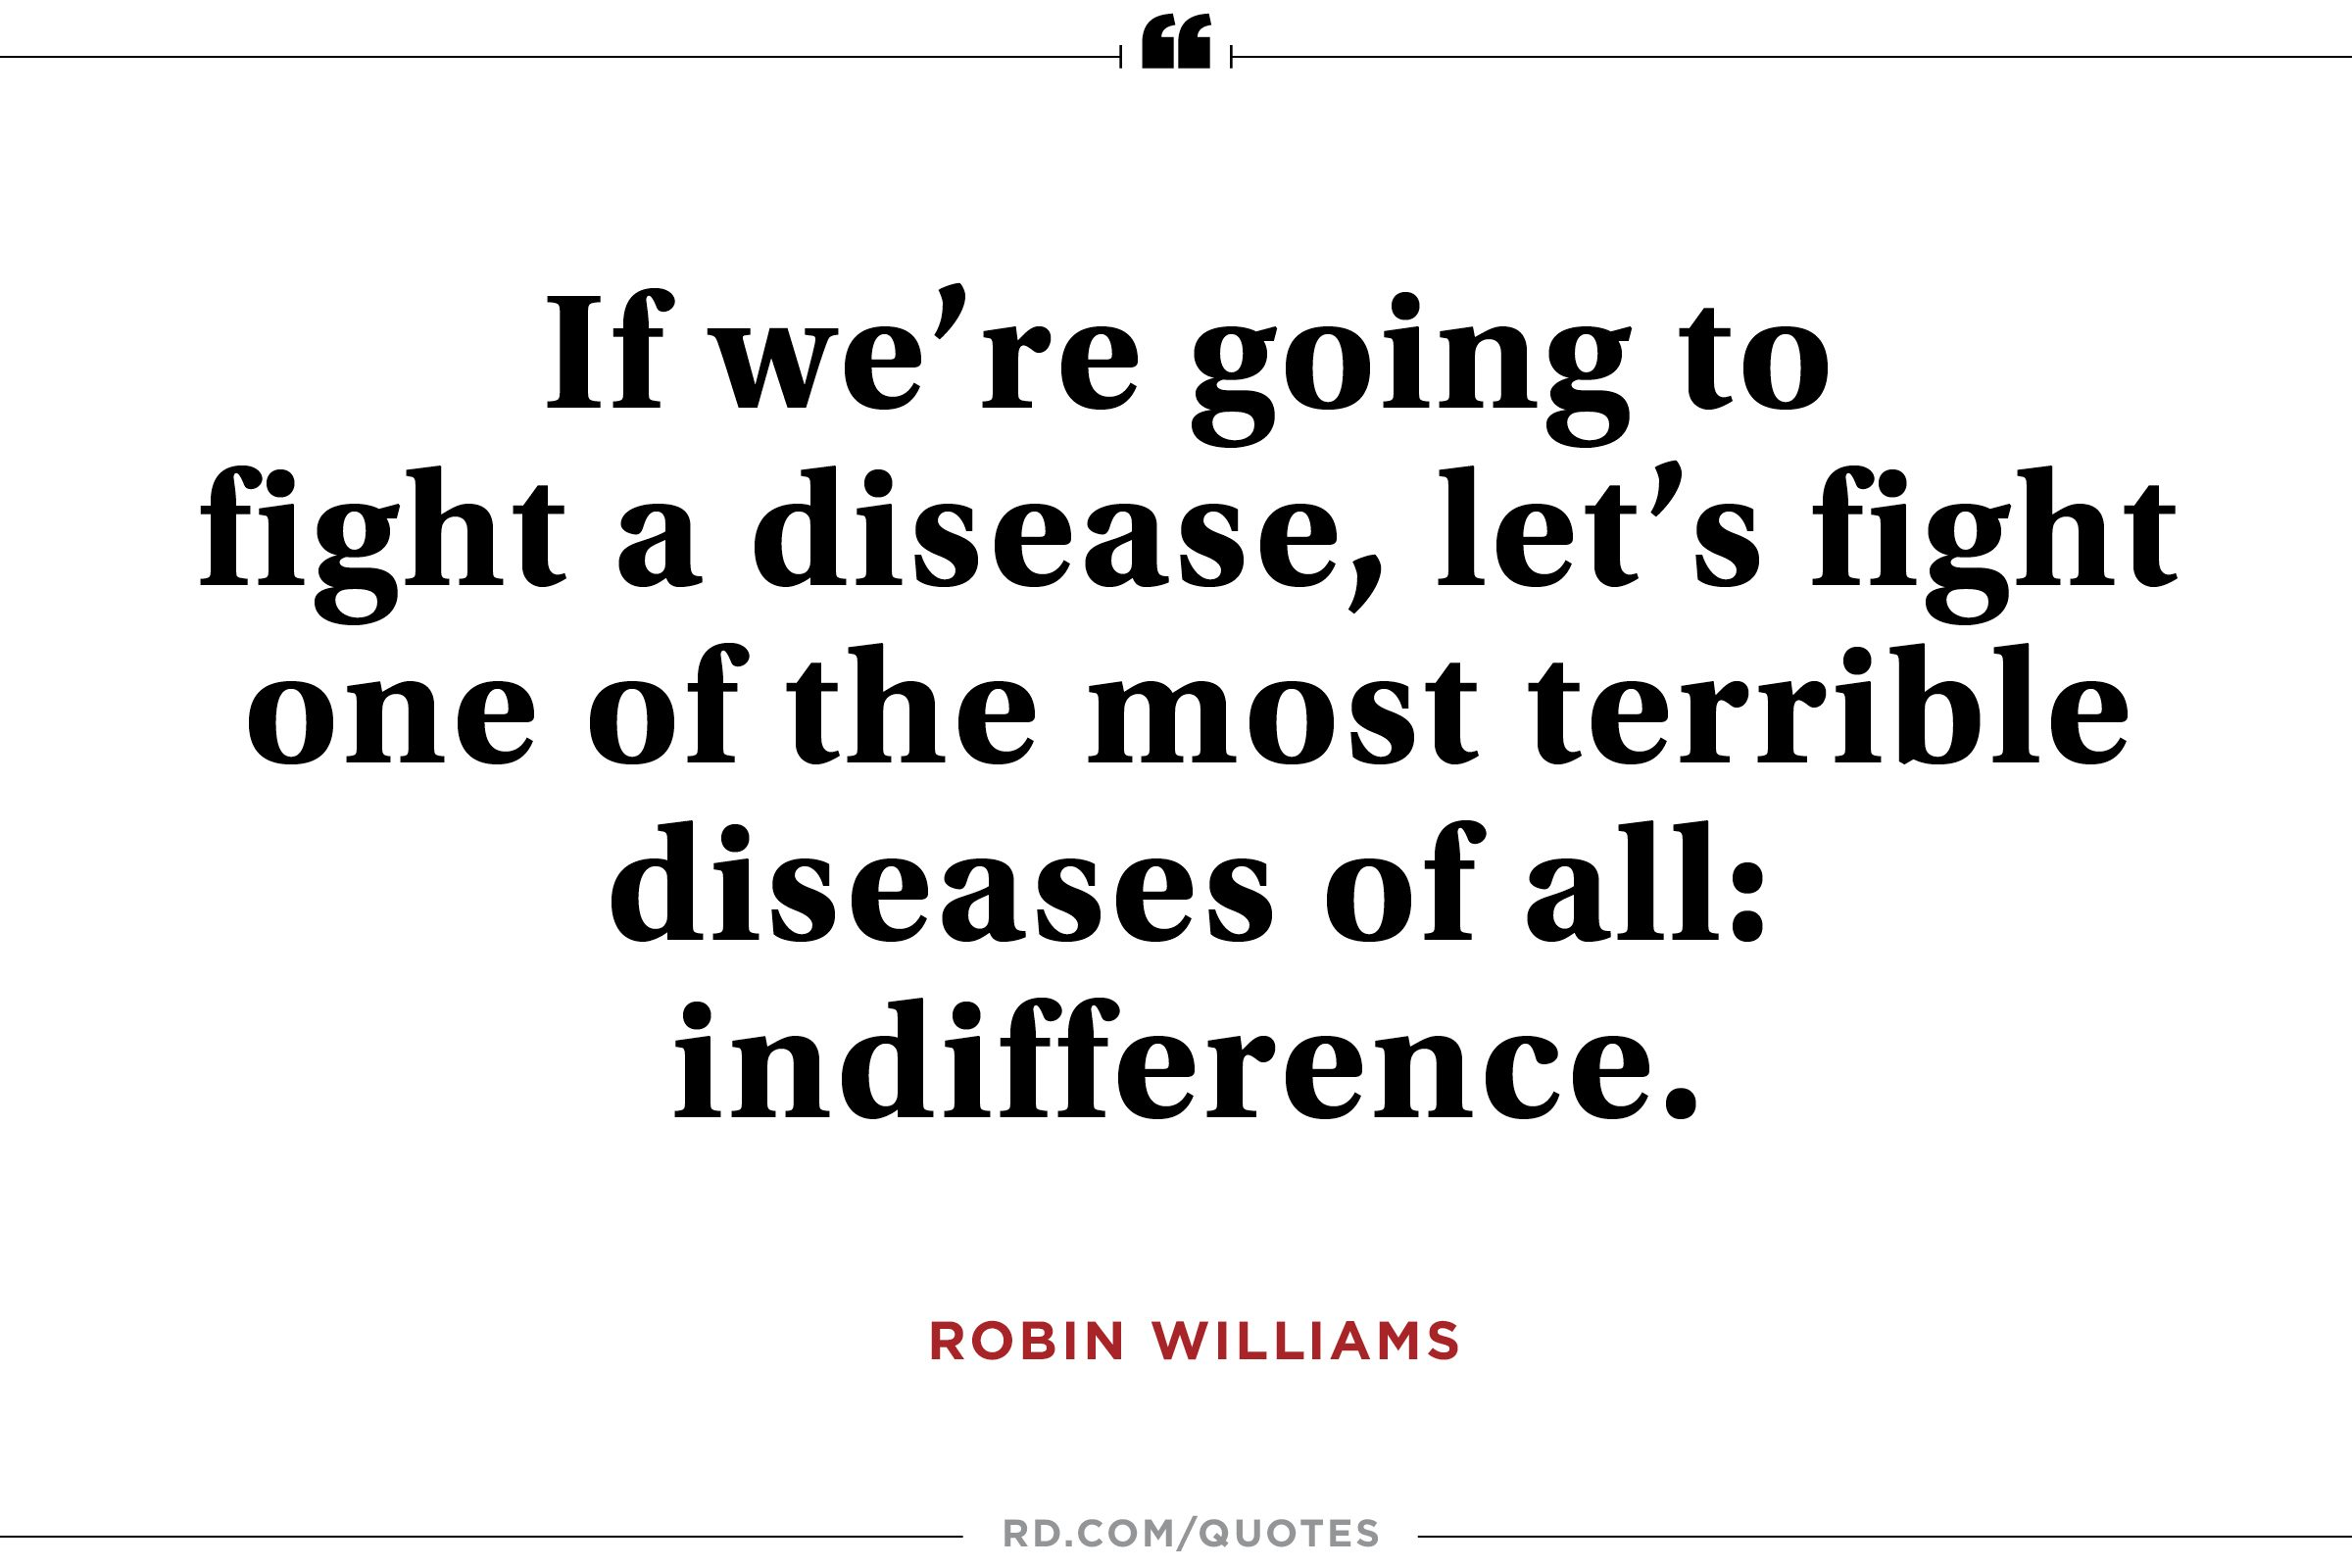 8 Robin Williams Quotes That Show His Wit and Heart